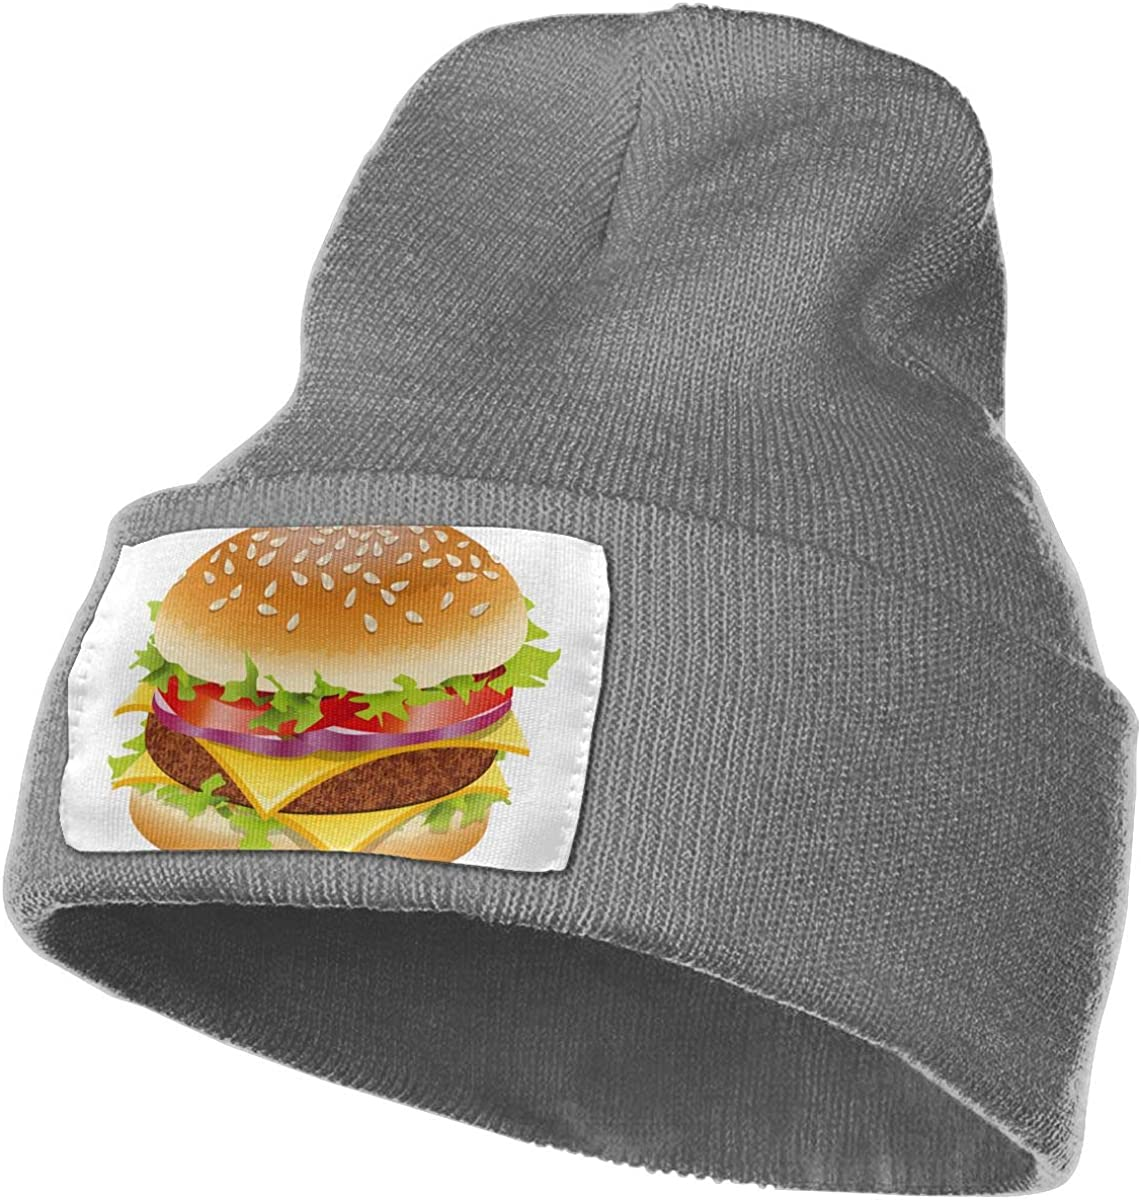 QZqDQ Funny Burger Unisex Fashion Knitted Hat Luxury Hip-Hop Cap